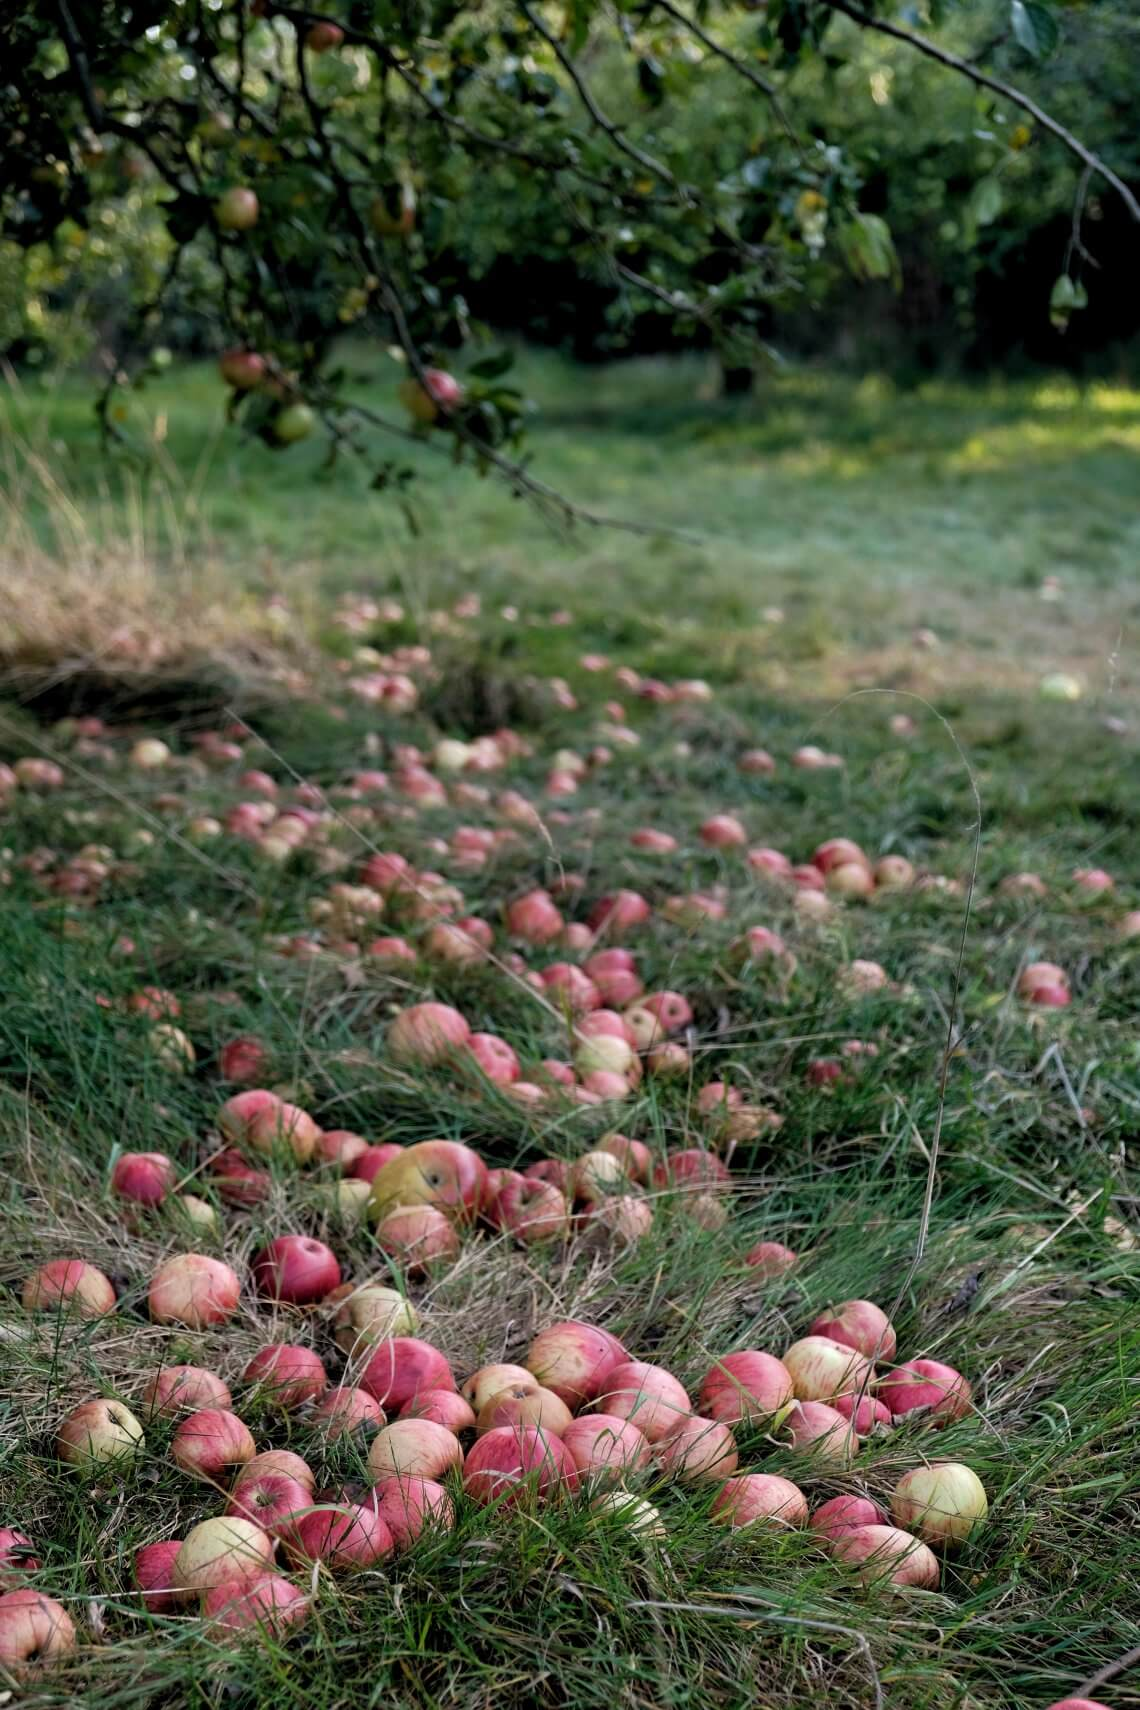 Fallen_apples_on_ground